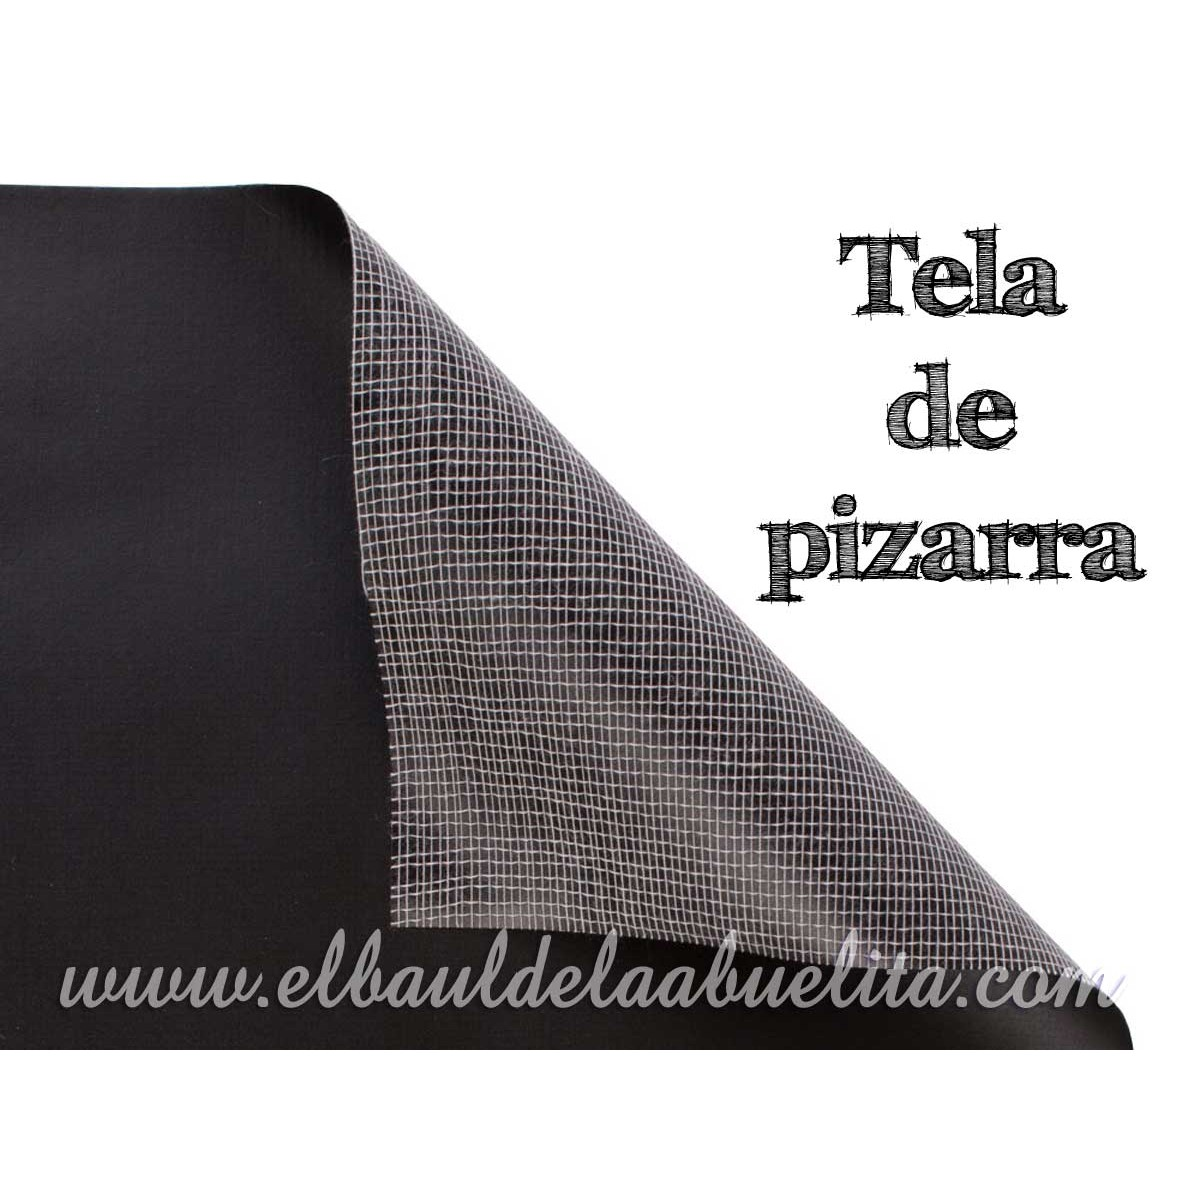 http://www.elbauldelaabuelita.com/product.php?id_product=592